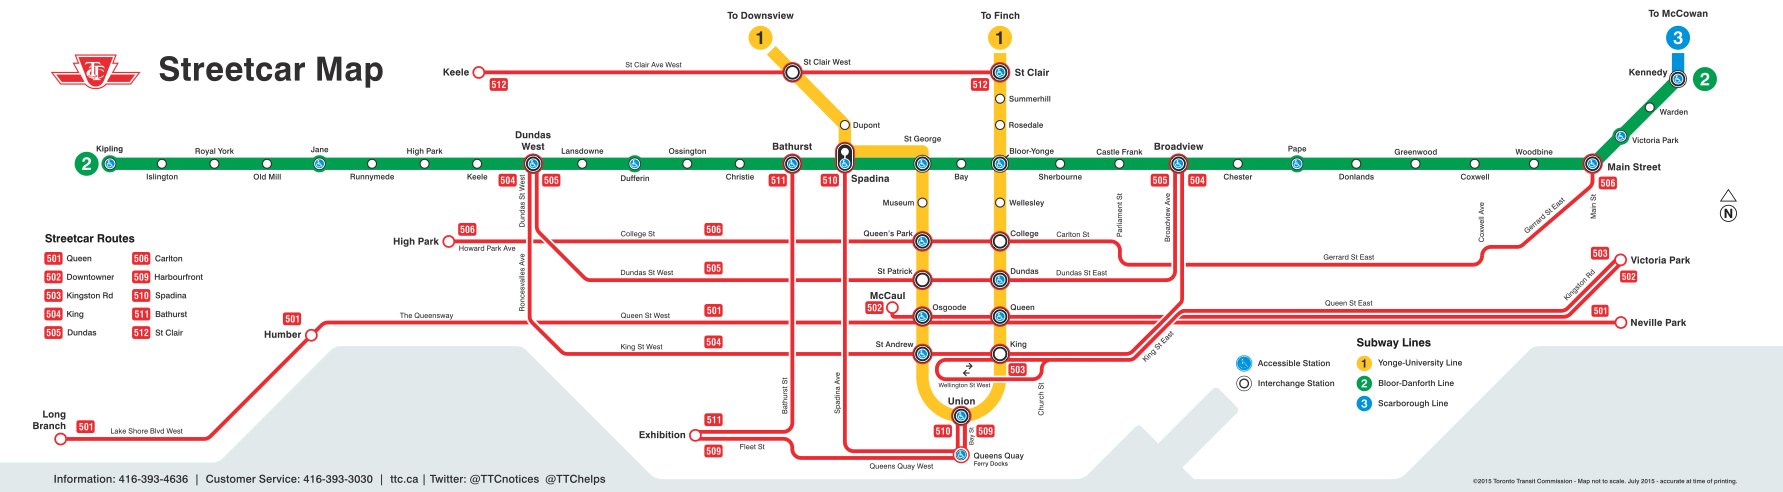 Toronto Streetcar Map Newbies guide: How to take a streetcar in Toronto | Etcetera